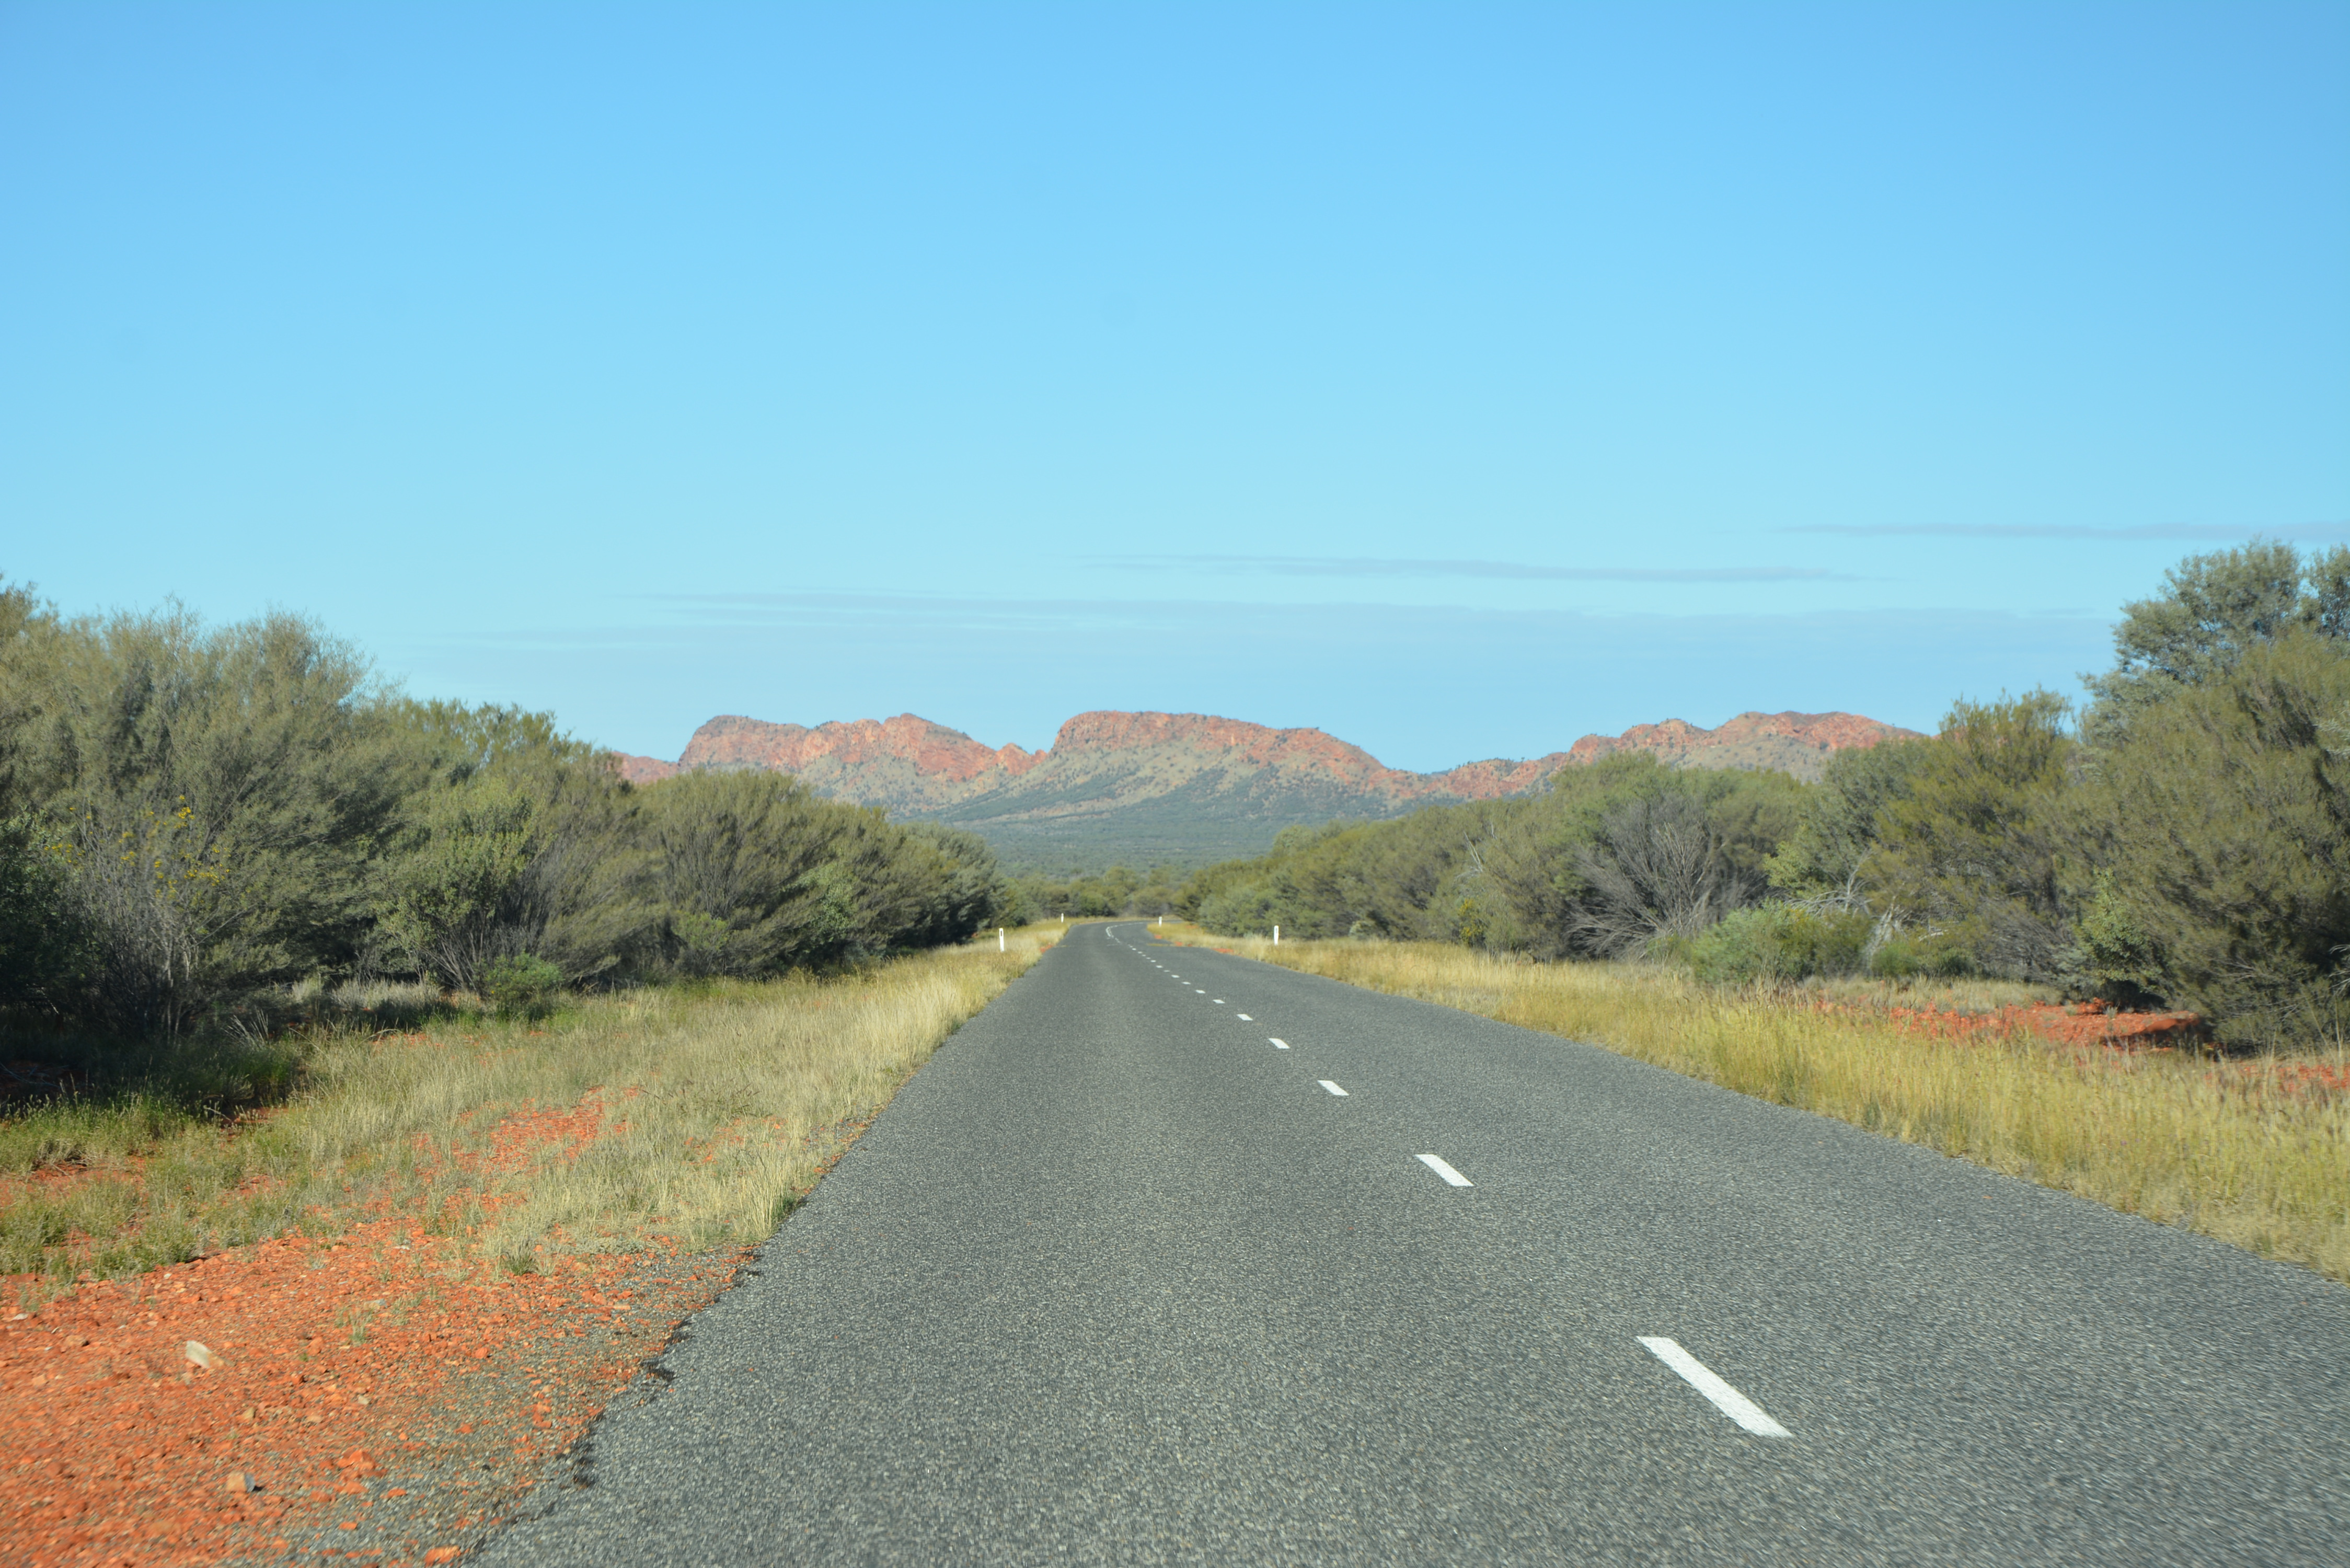 Road to canyons NT